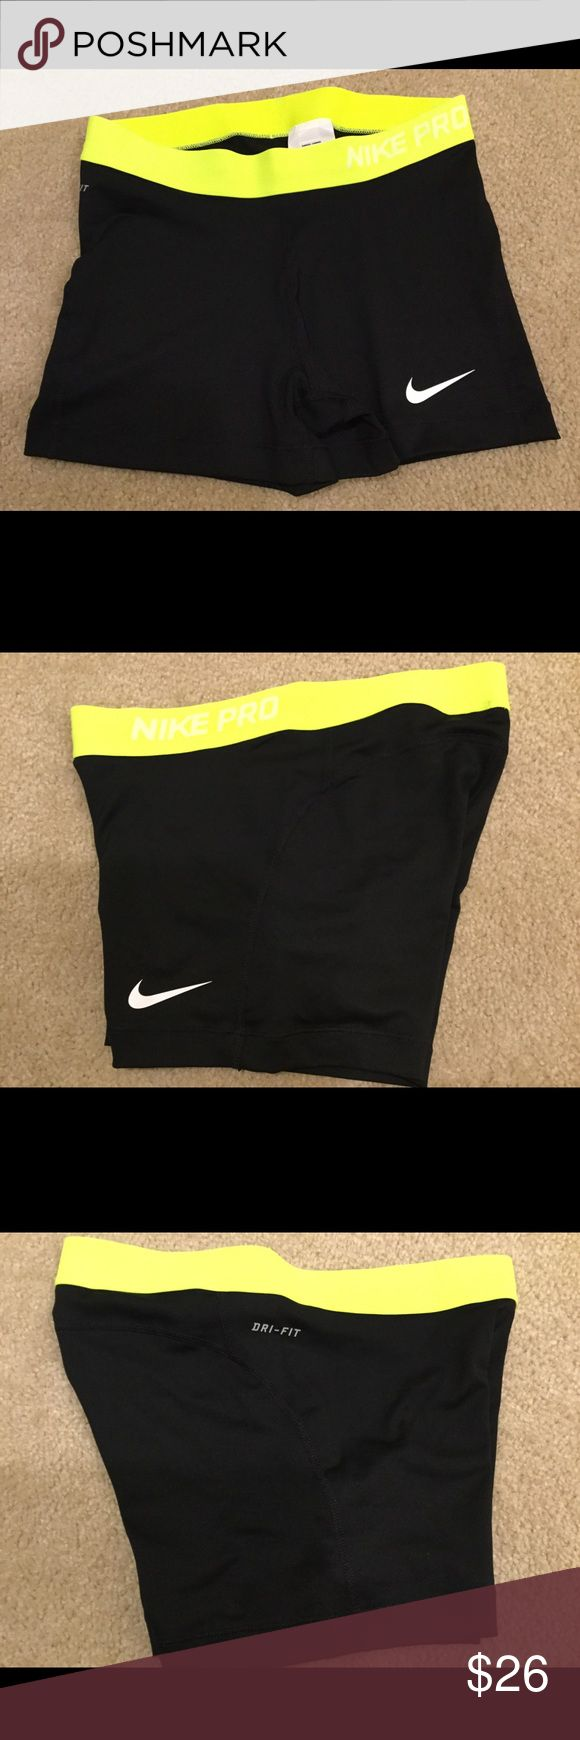 "Women's Nike Pro Compression Shorts NWOT Women's Nike Pro 3"" Compression Shorts Size Medium. Dri-Fit material. 80% Polyester 20% Spandex. Never worn. Nike Shorts"